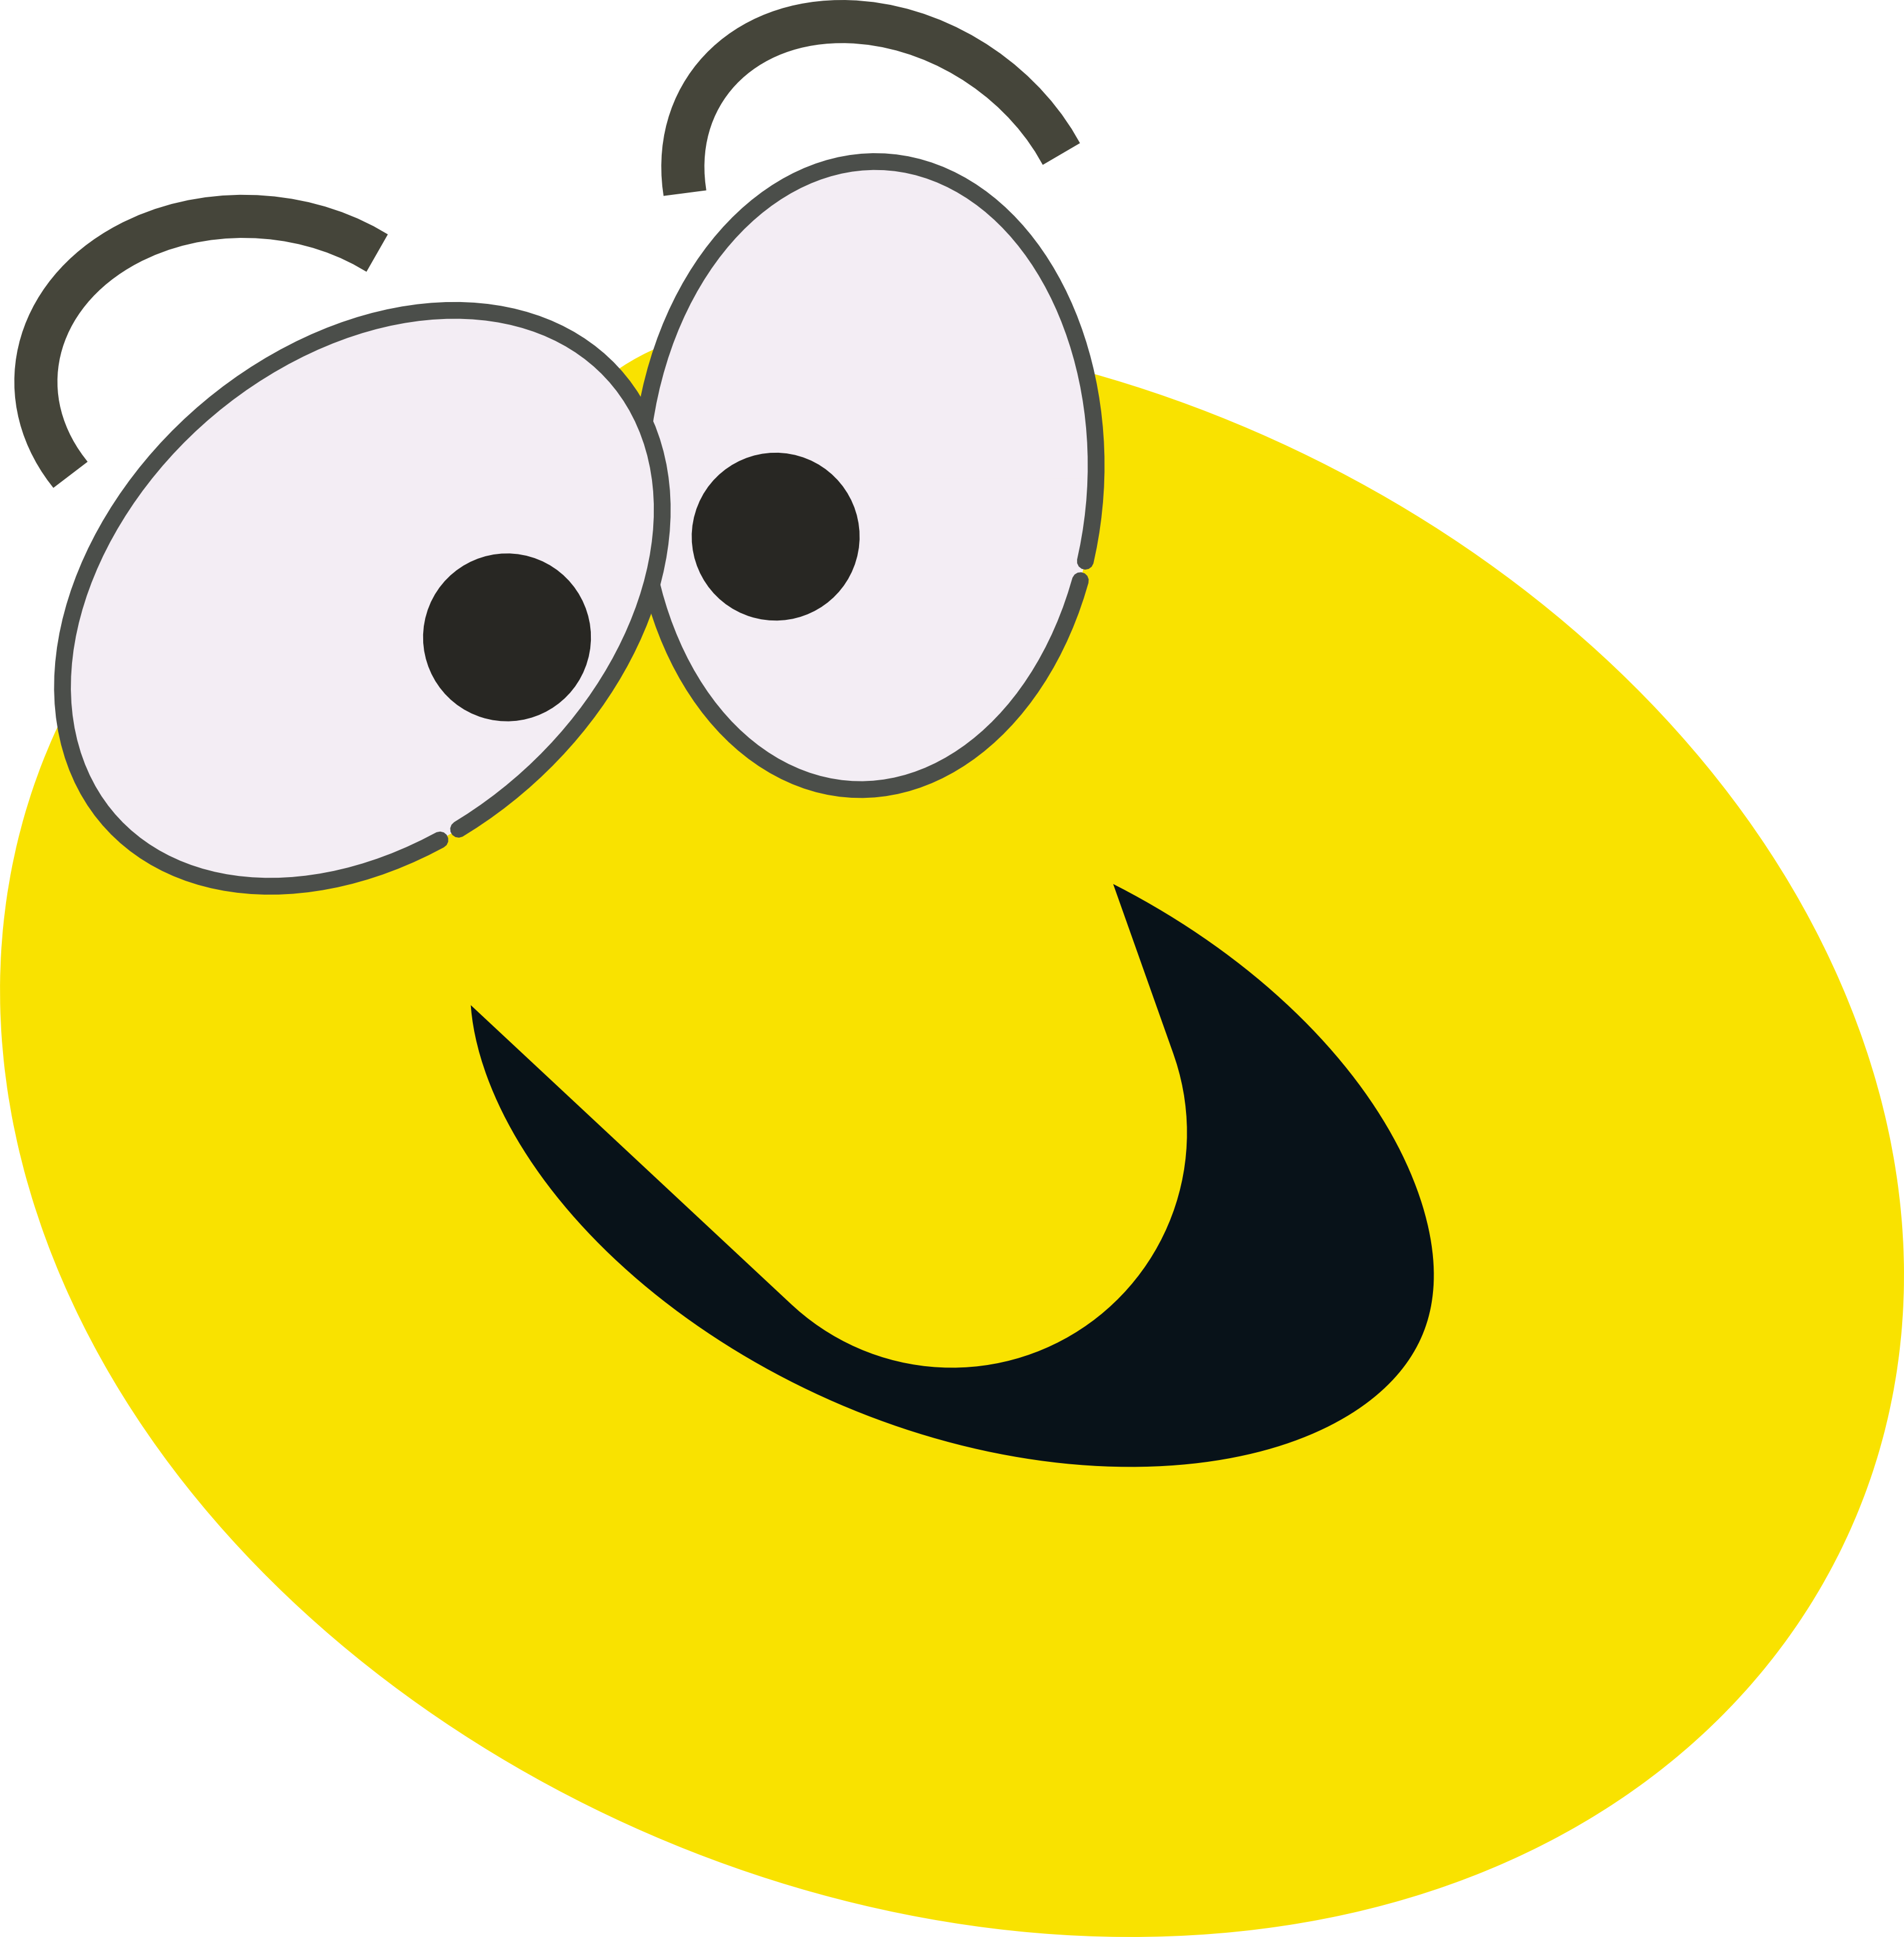 3145x3200 Smiley Face Happy And Sad Face Clip Art Free Clipart Images 2 2